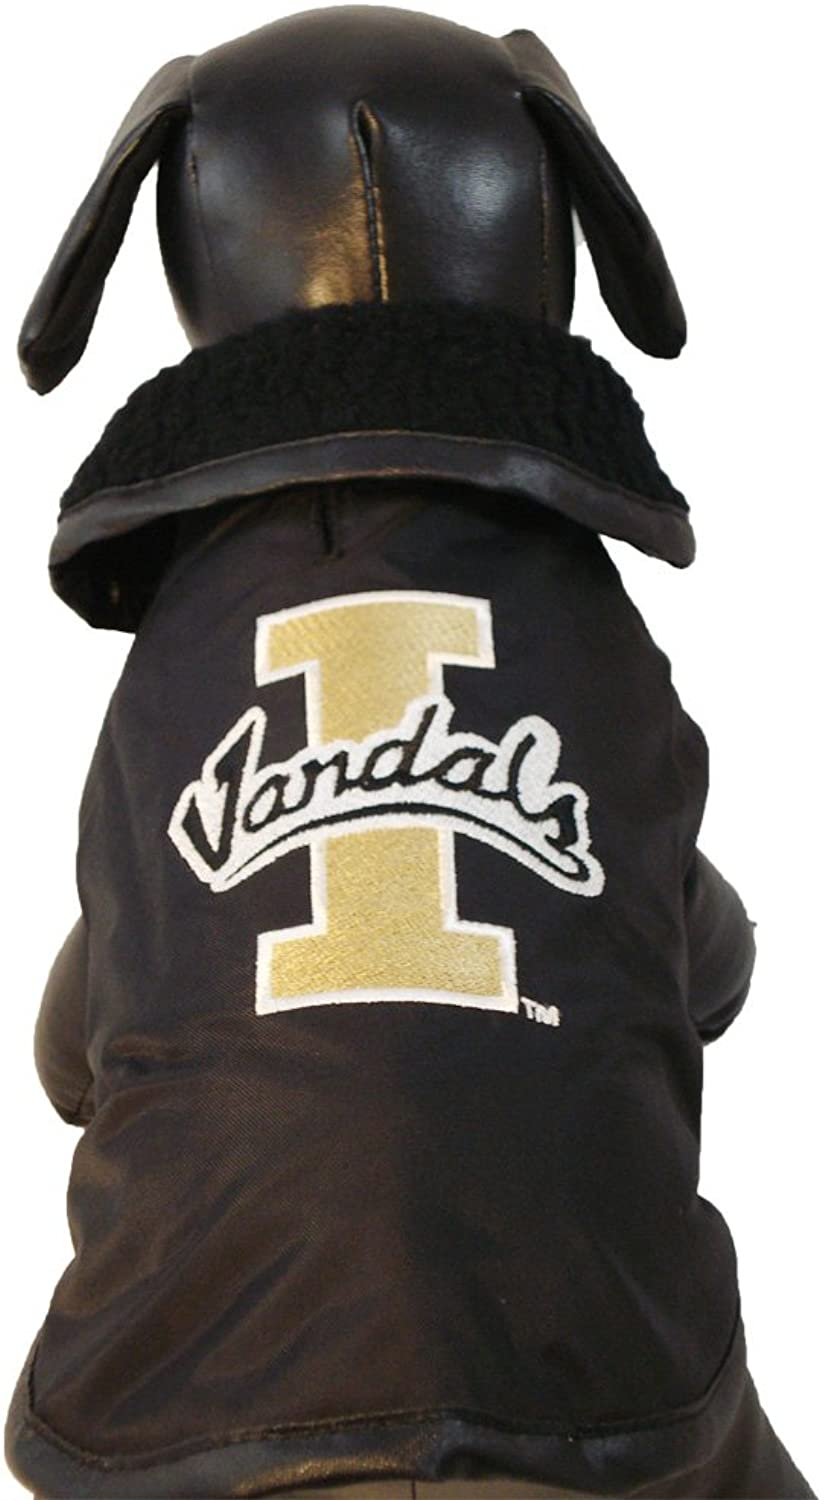 All Star Dogs Idaho Vandals All Weather Resistant Predective Dog Outerwear, XSmall